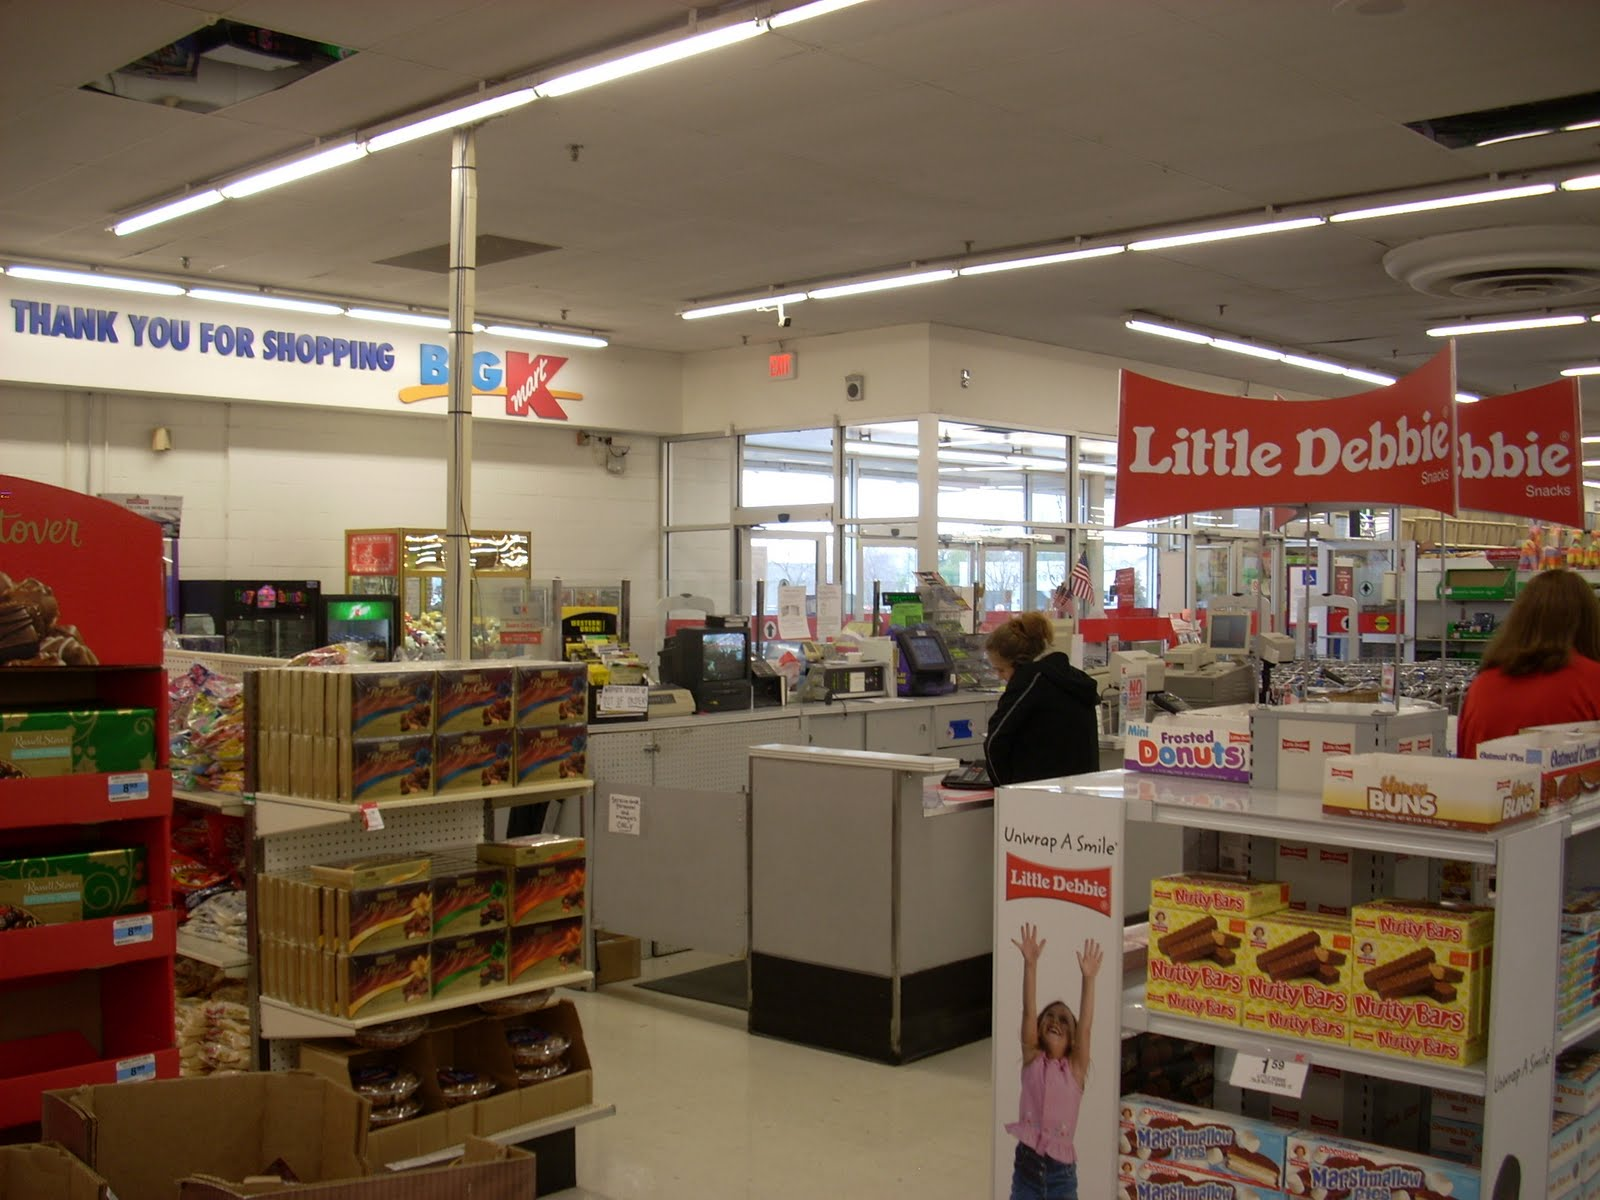 Super Kmart Blog Hendersonville Tn Big Kmart Super Kmart Blog!: Hendersonville TN Big Kmart